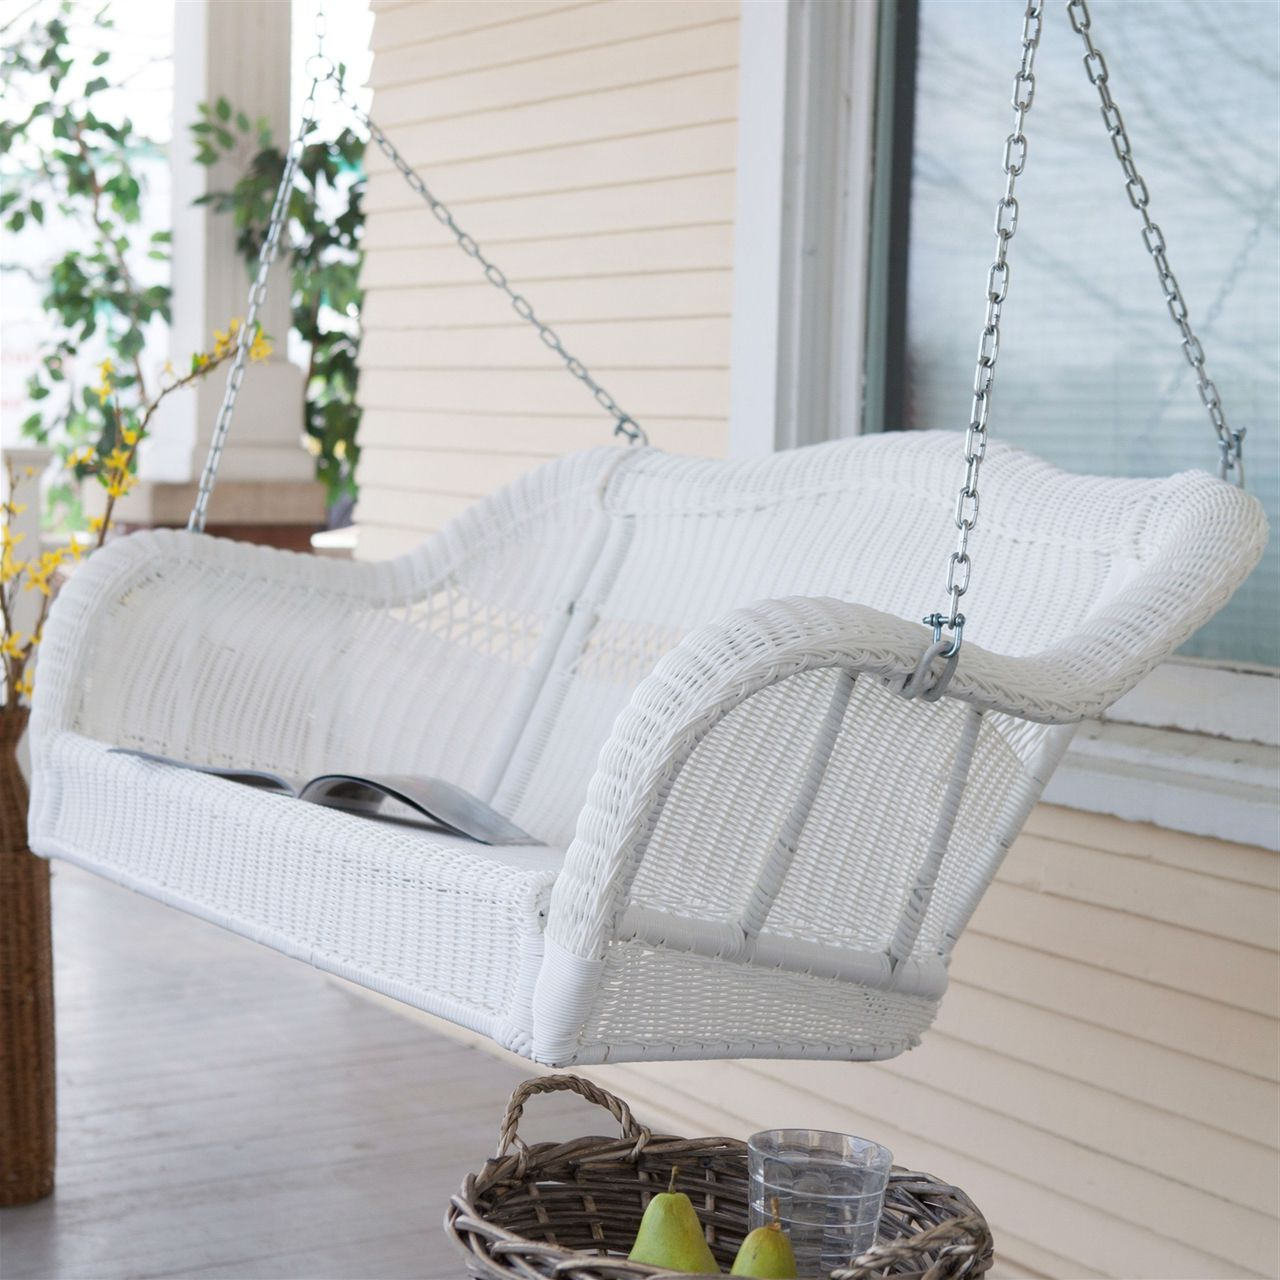 Most Recent Porch Swings With Chain Throughout White Resin Wicker Porch Swing, Hanging Chain – 600 Lb (View 13 of 26)